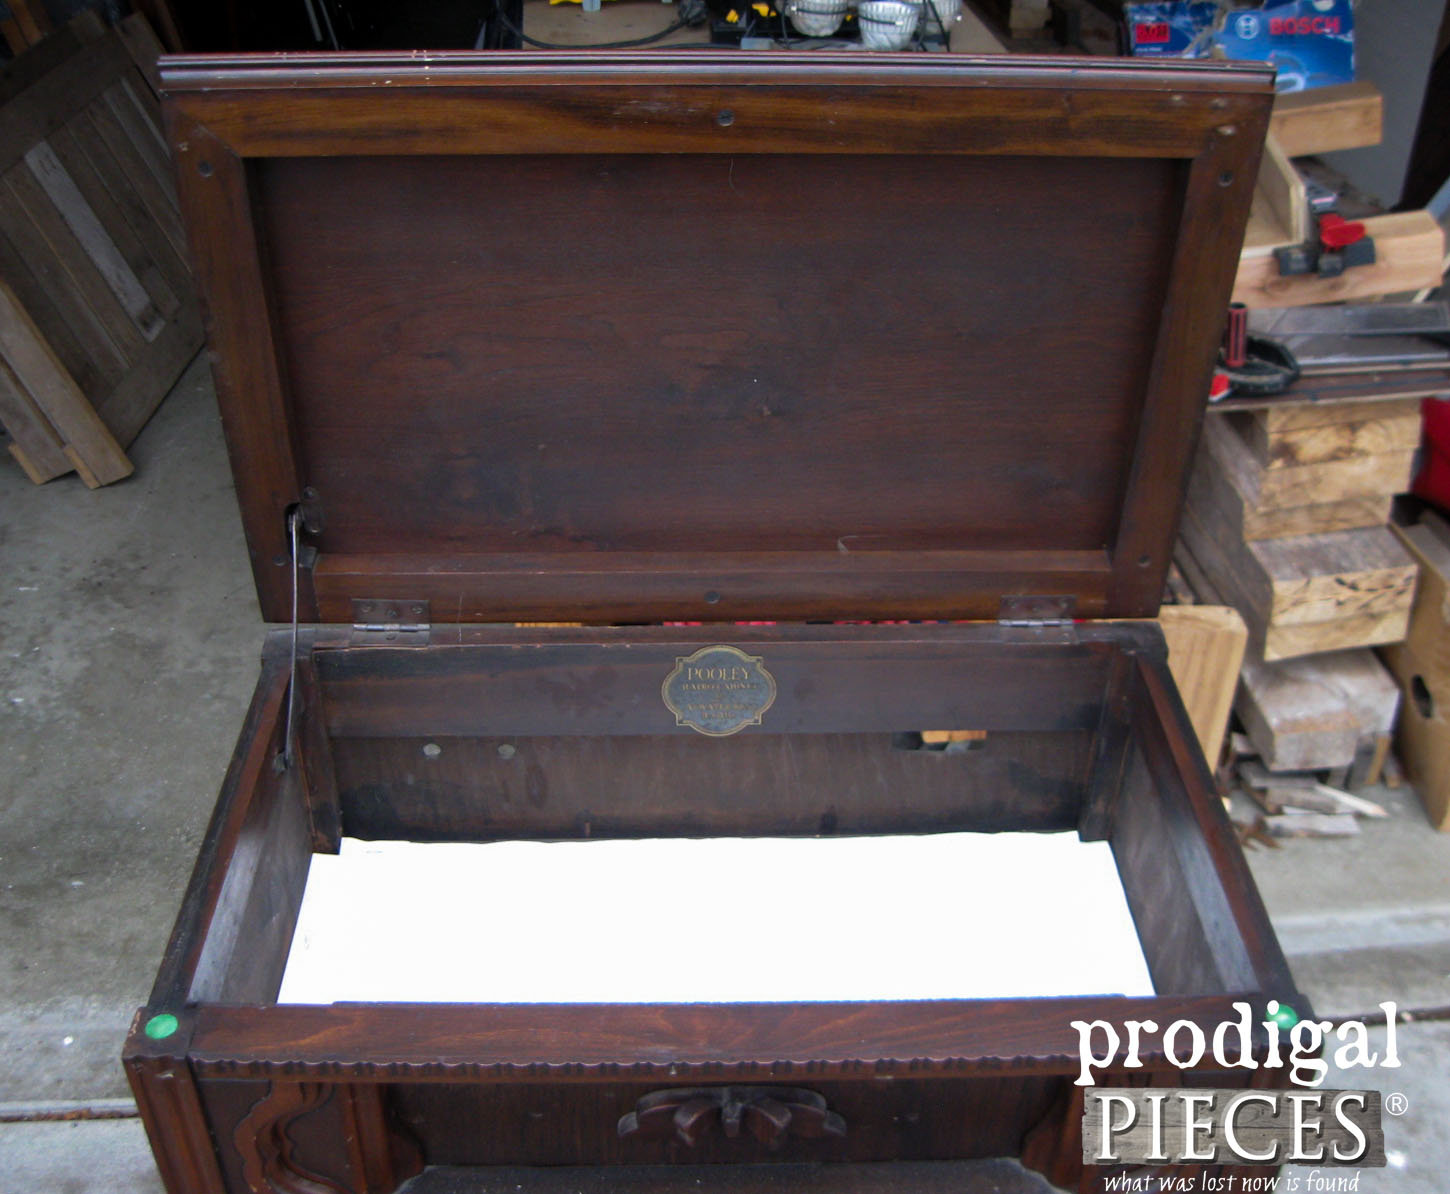 Open Antique Radio Top | Prodigal Pieces | www.prodigalpieces.com